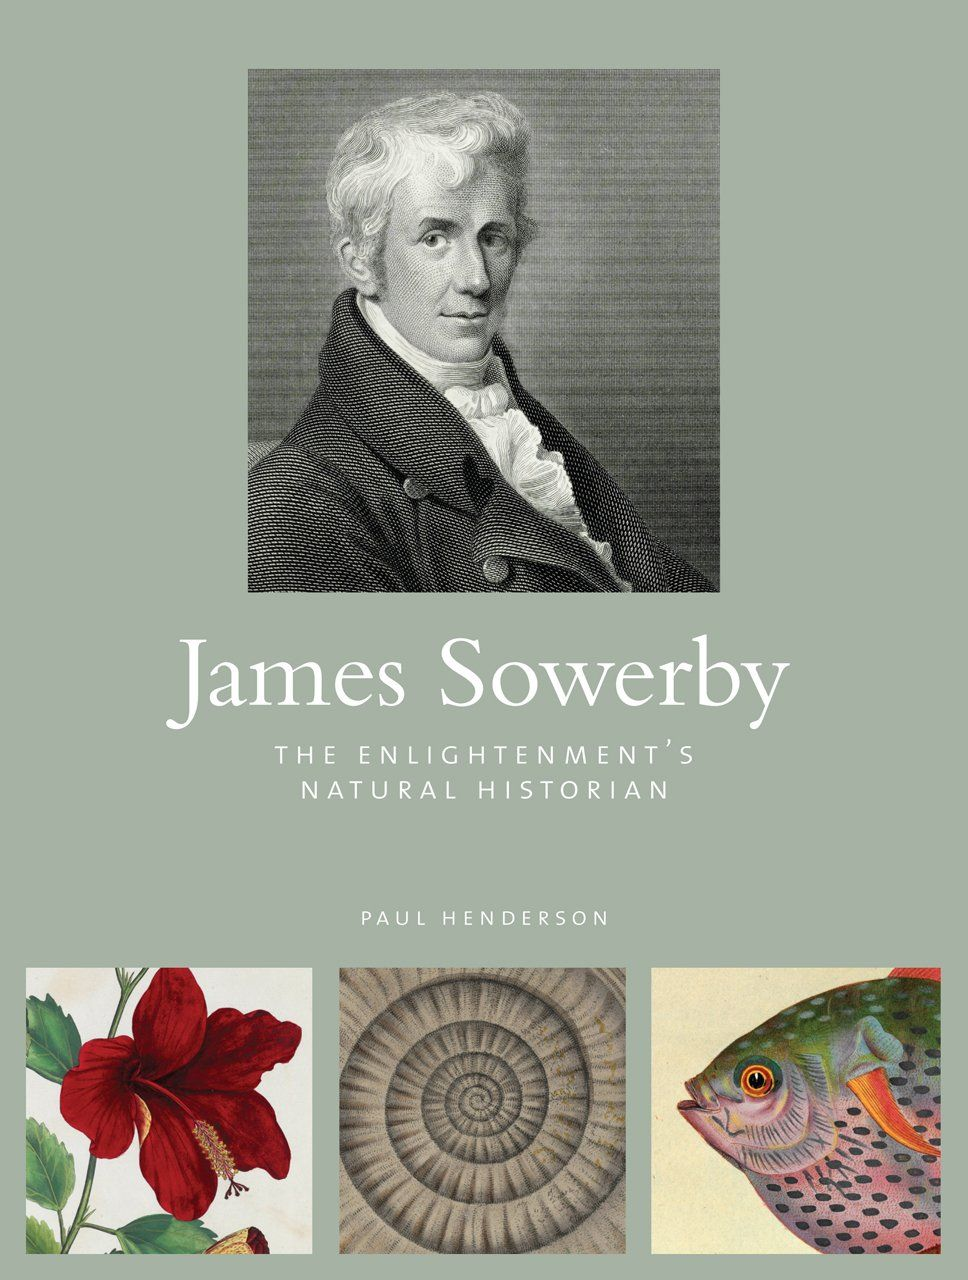 James Sowerby by Paul Henderson